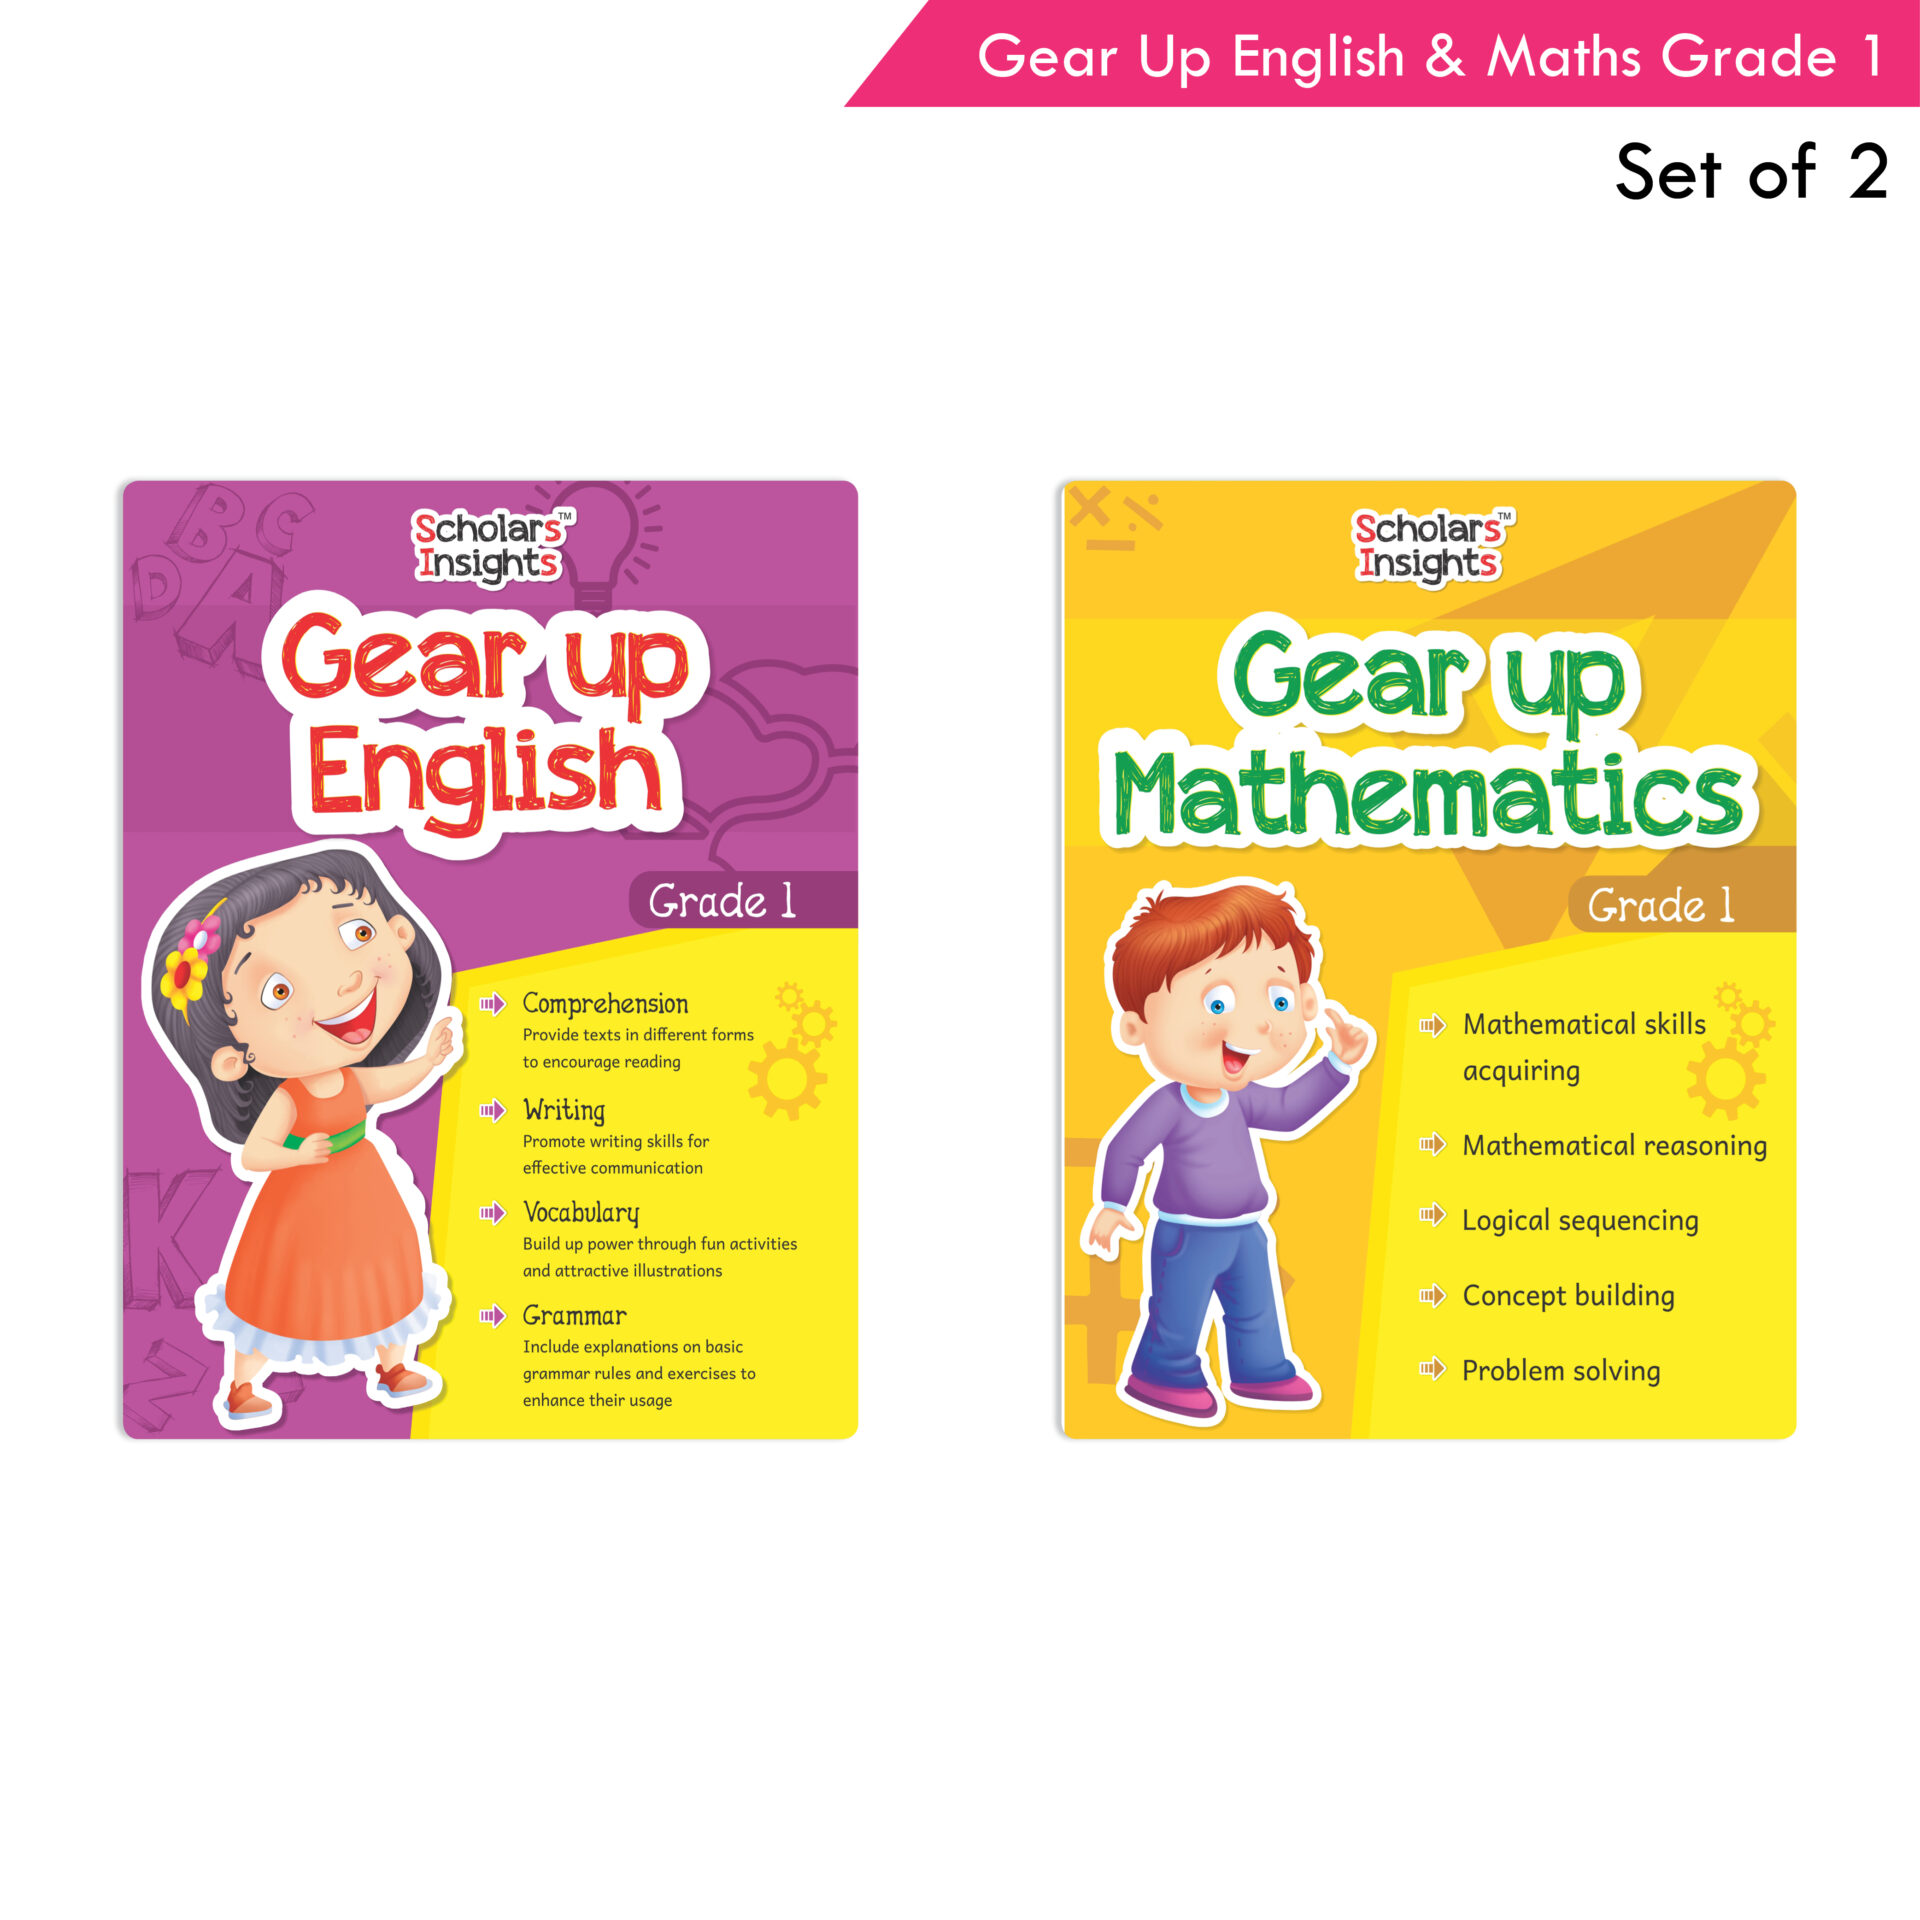 Scholars Insights Gear Up English and Maths Grade 1 Set of 2 1